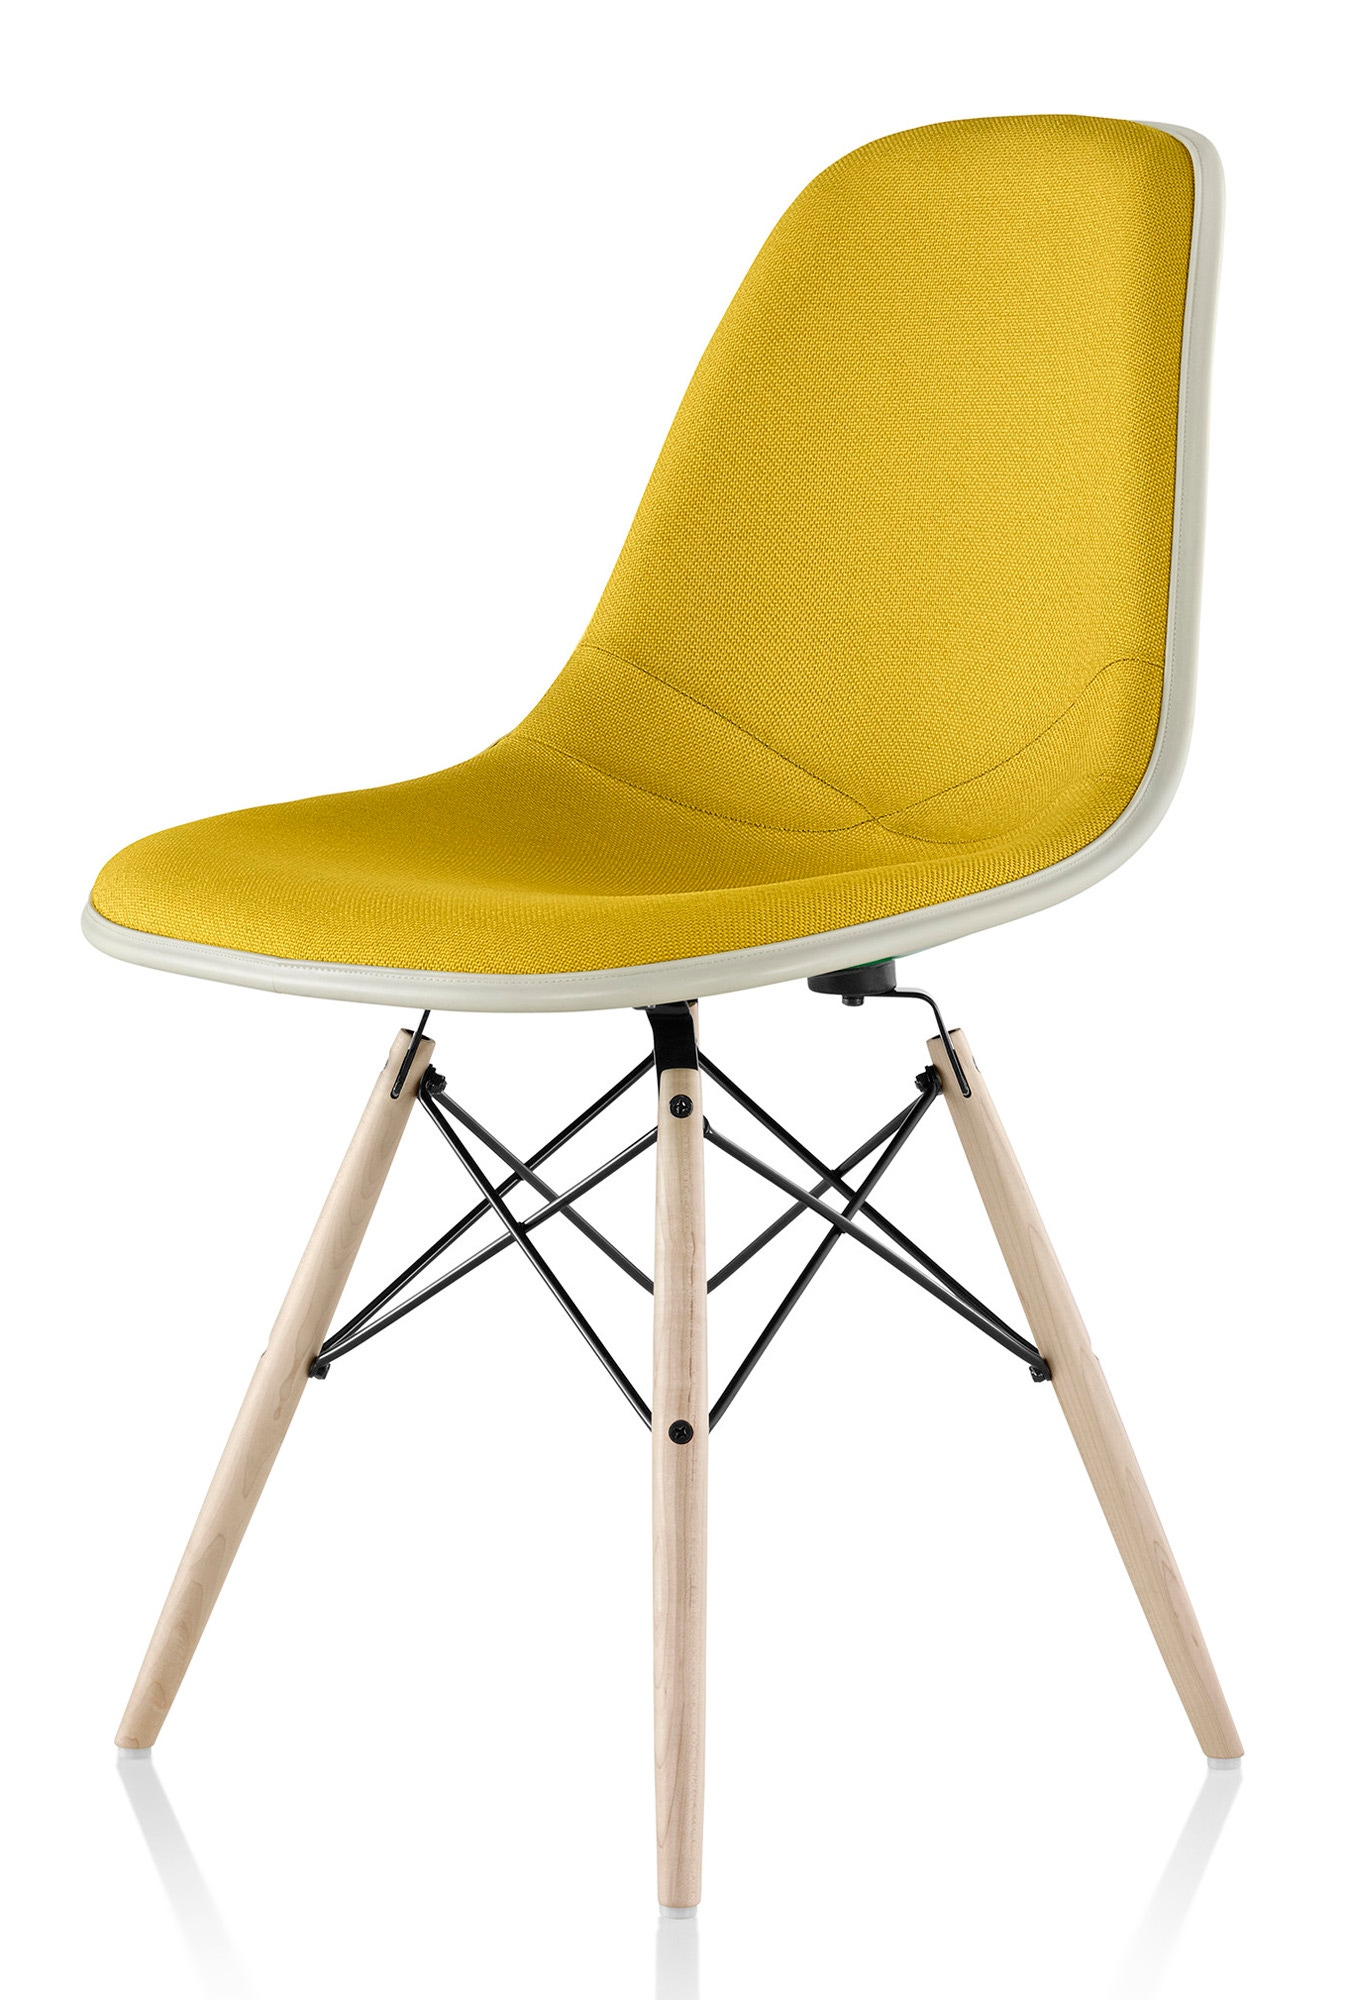 herman miller eames molded fiberglass side chair. Black Bedroom Furniture Sets. Home Design Ideas